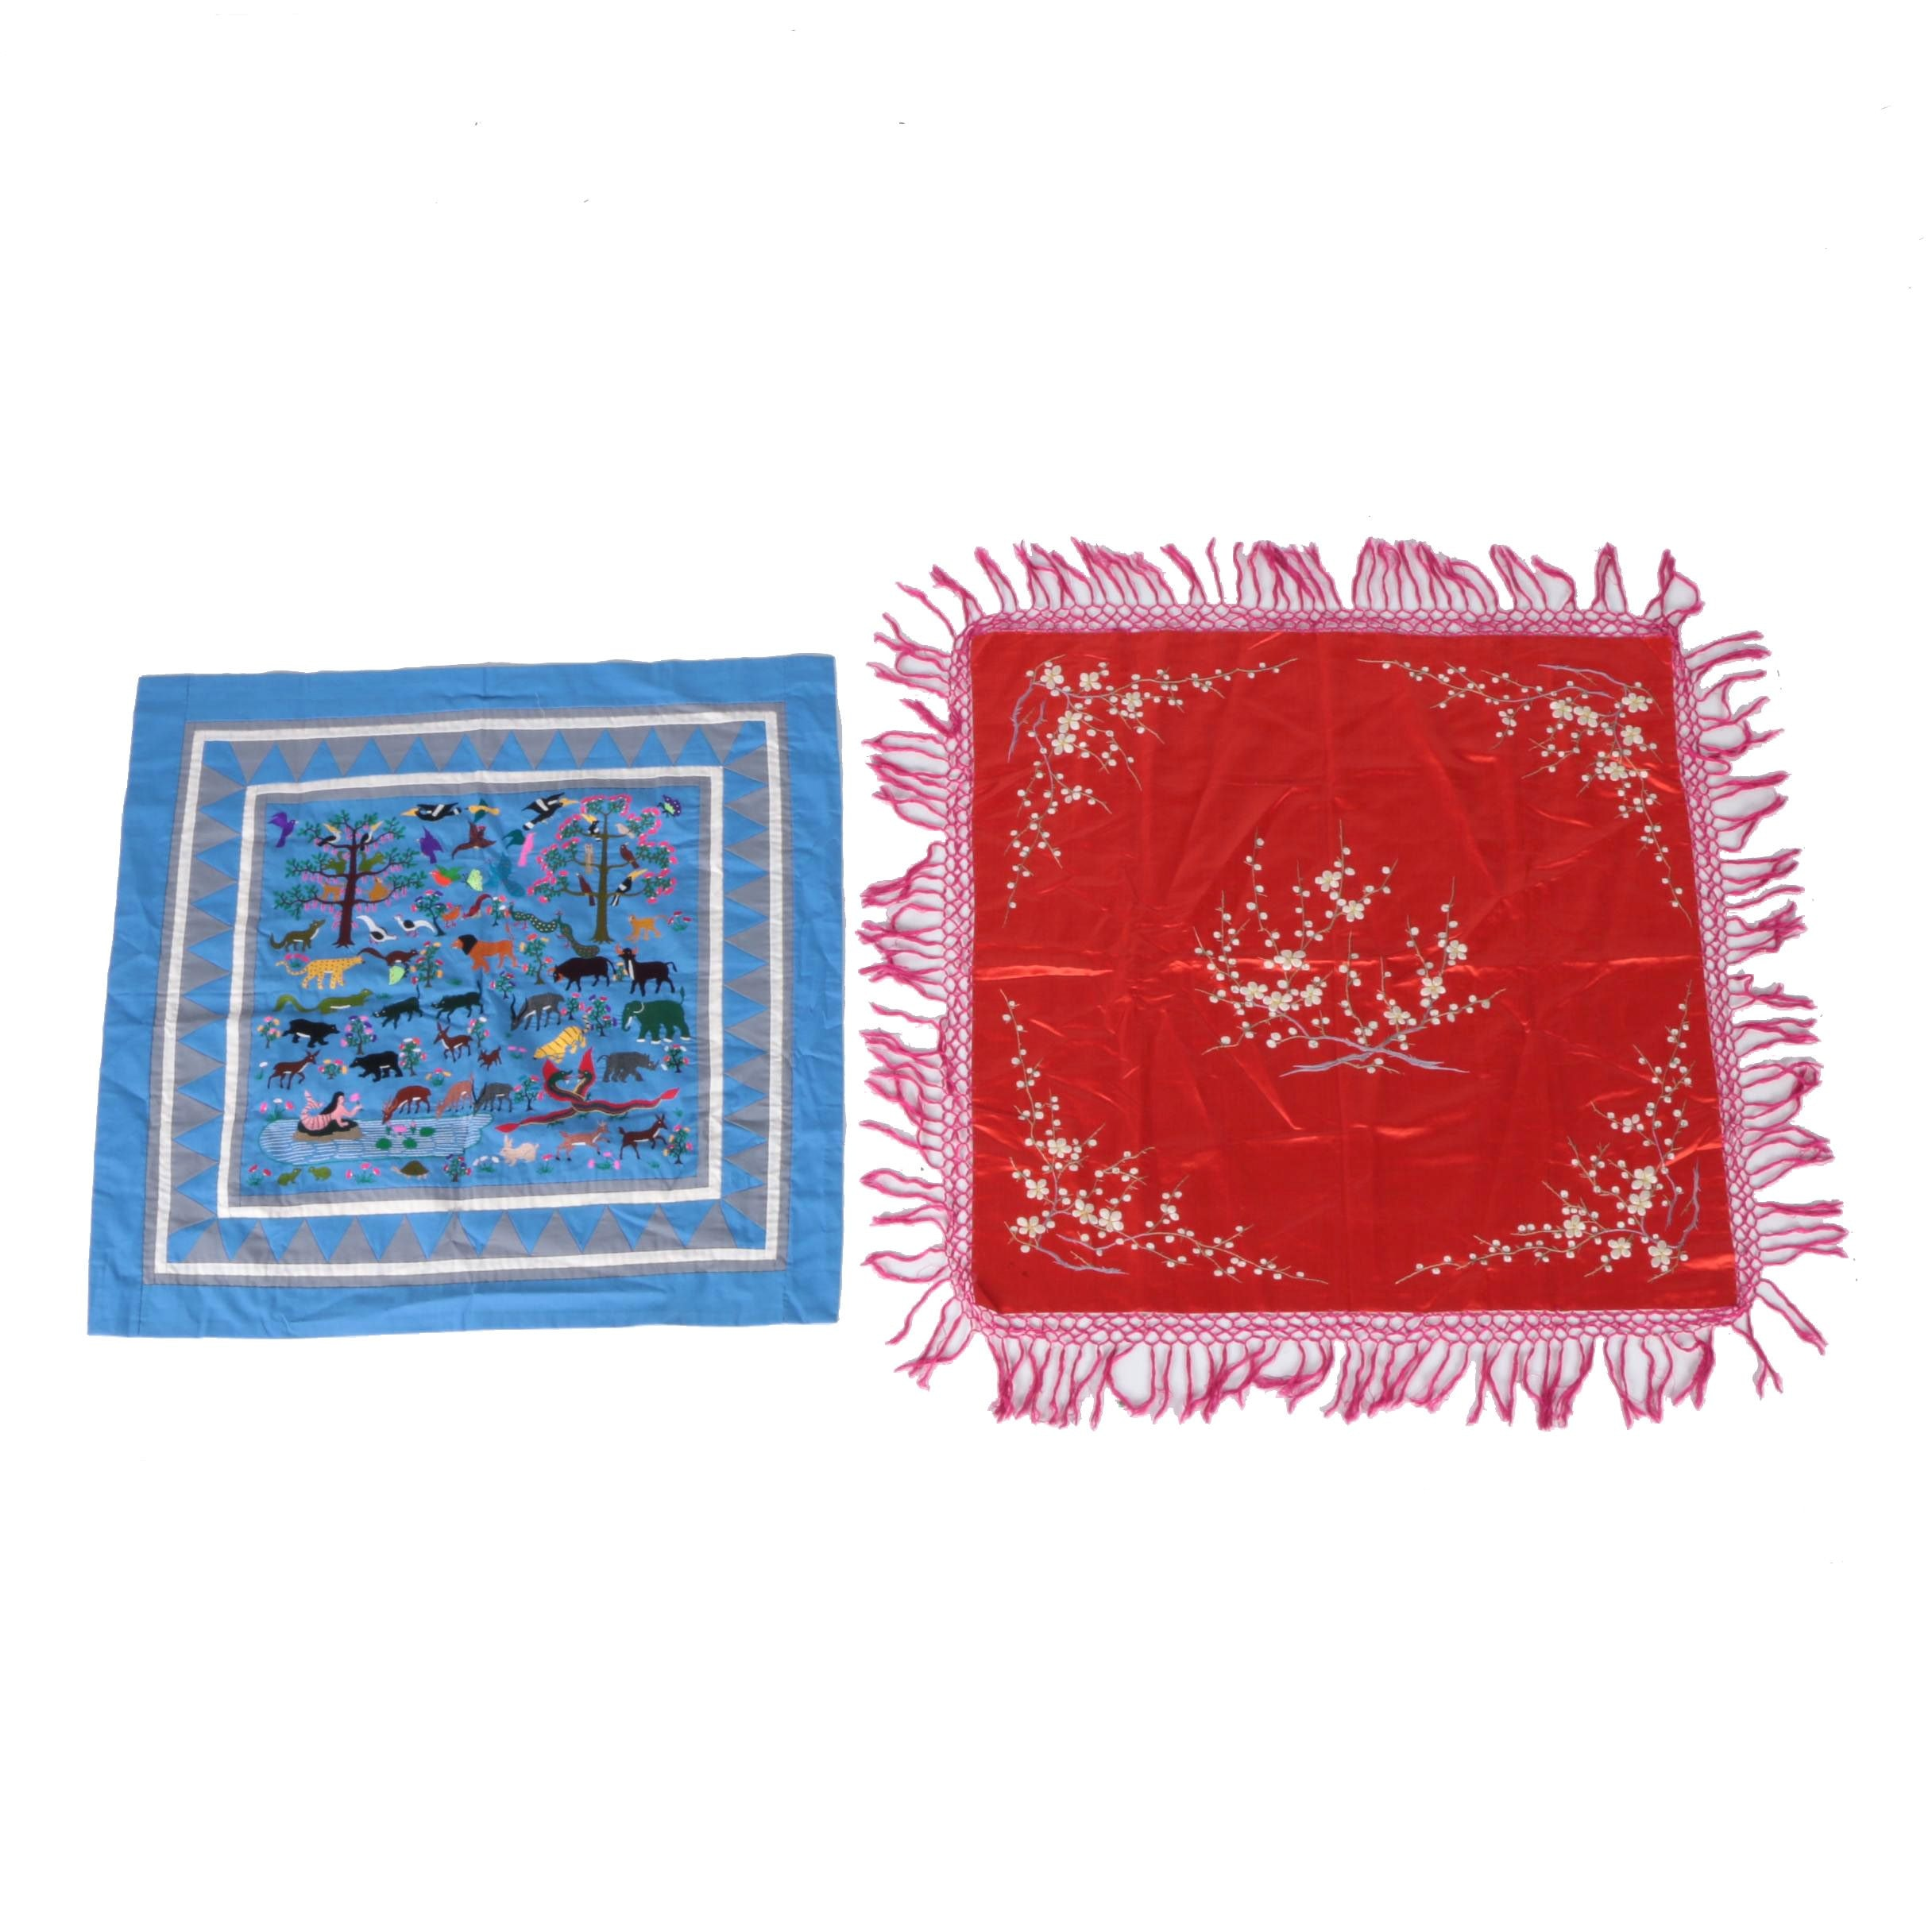 Hand-Embroidered Wall Hanging and Table Cover